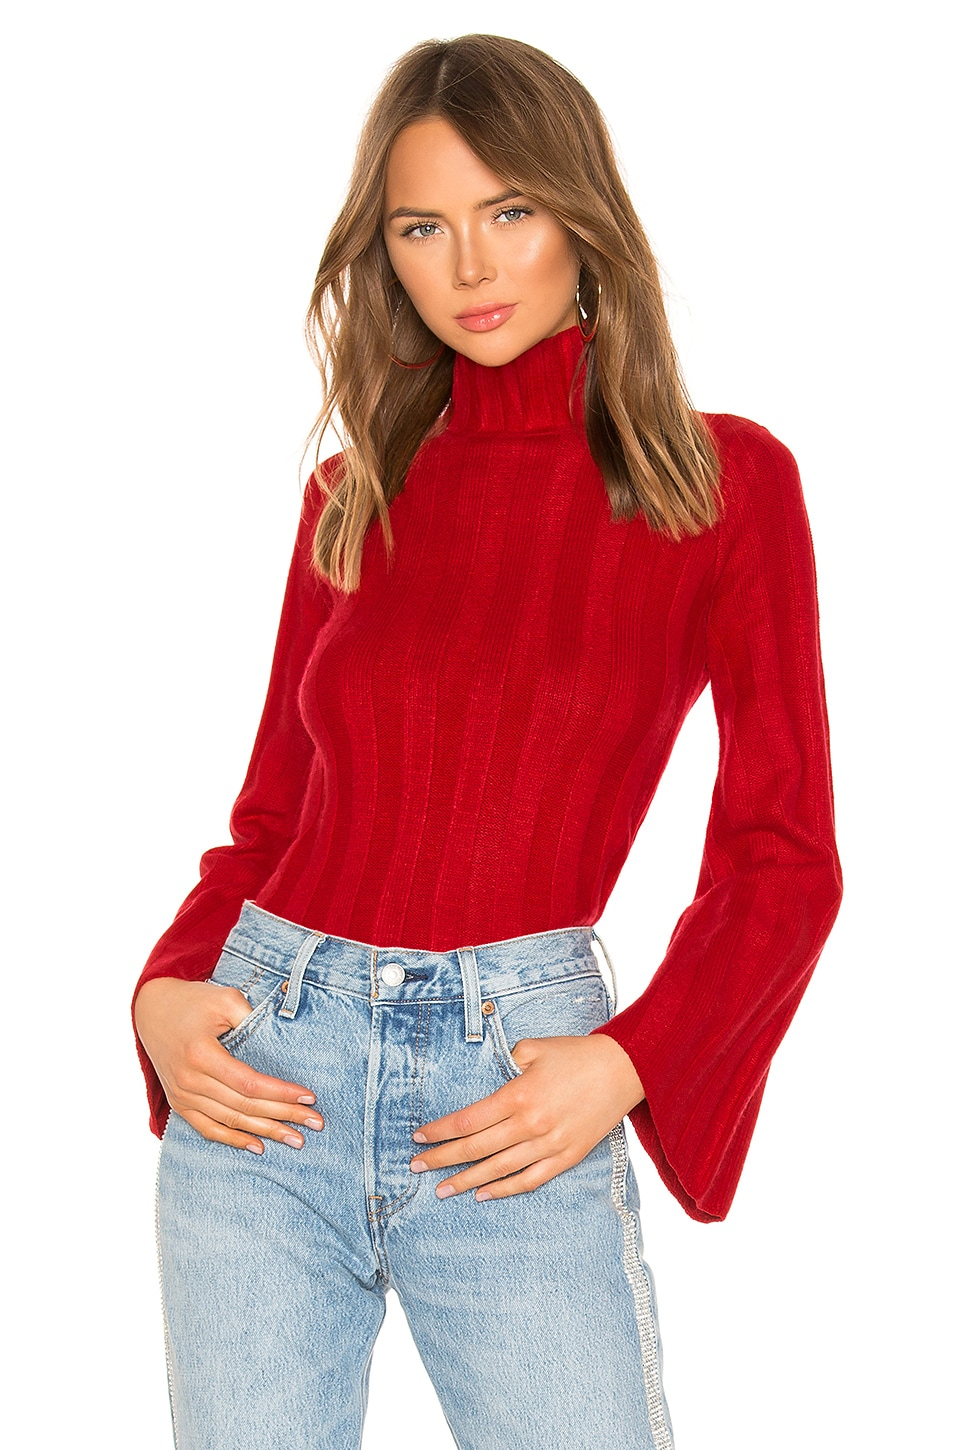 Lovers + Friends Taytay Sweater in Red